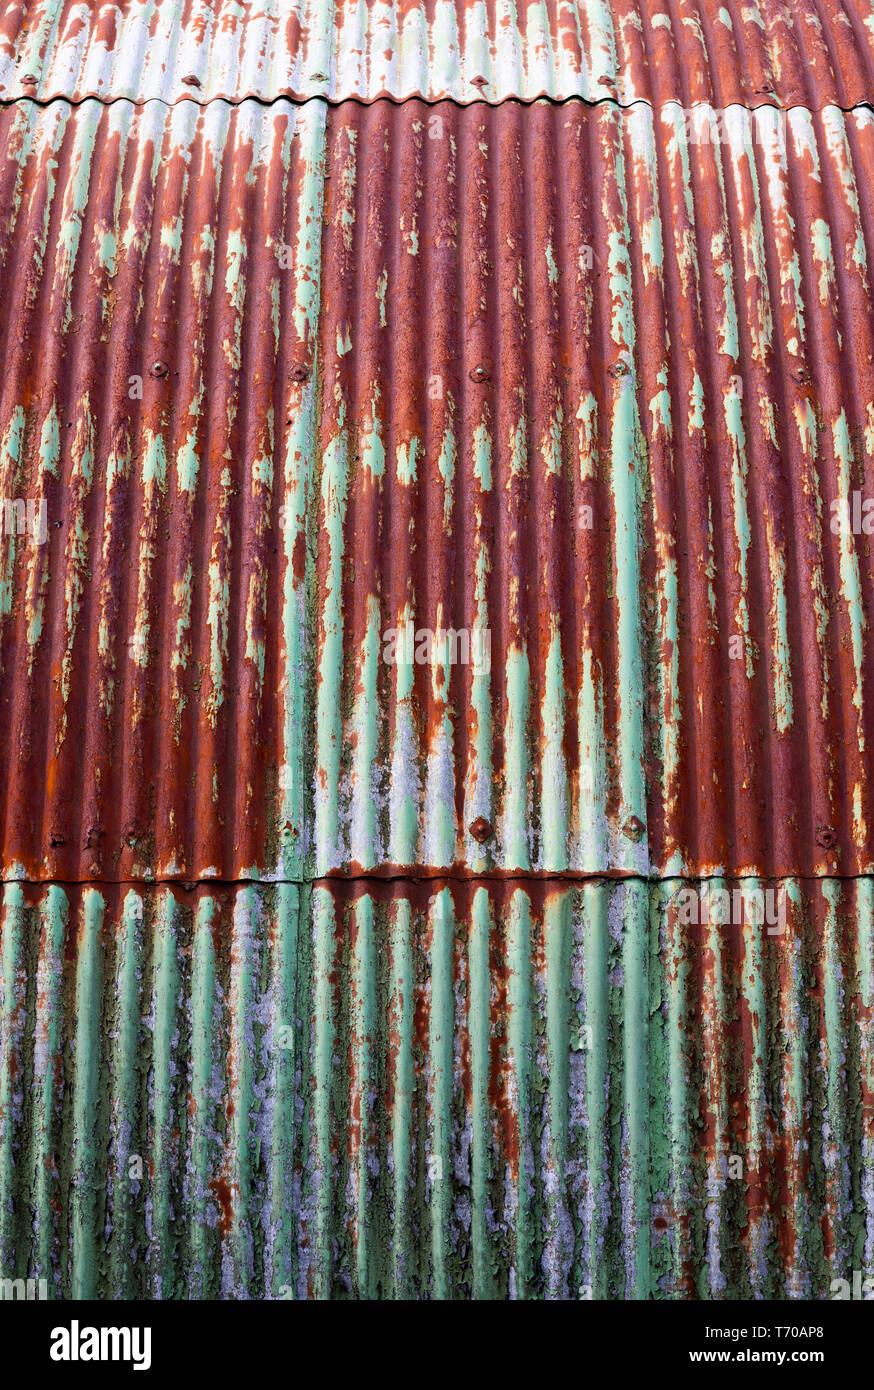 Corrugated steel wall to dilapidated Nissen hut building with flaking green paintwork - Stock Image